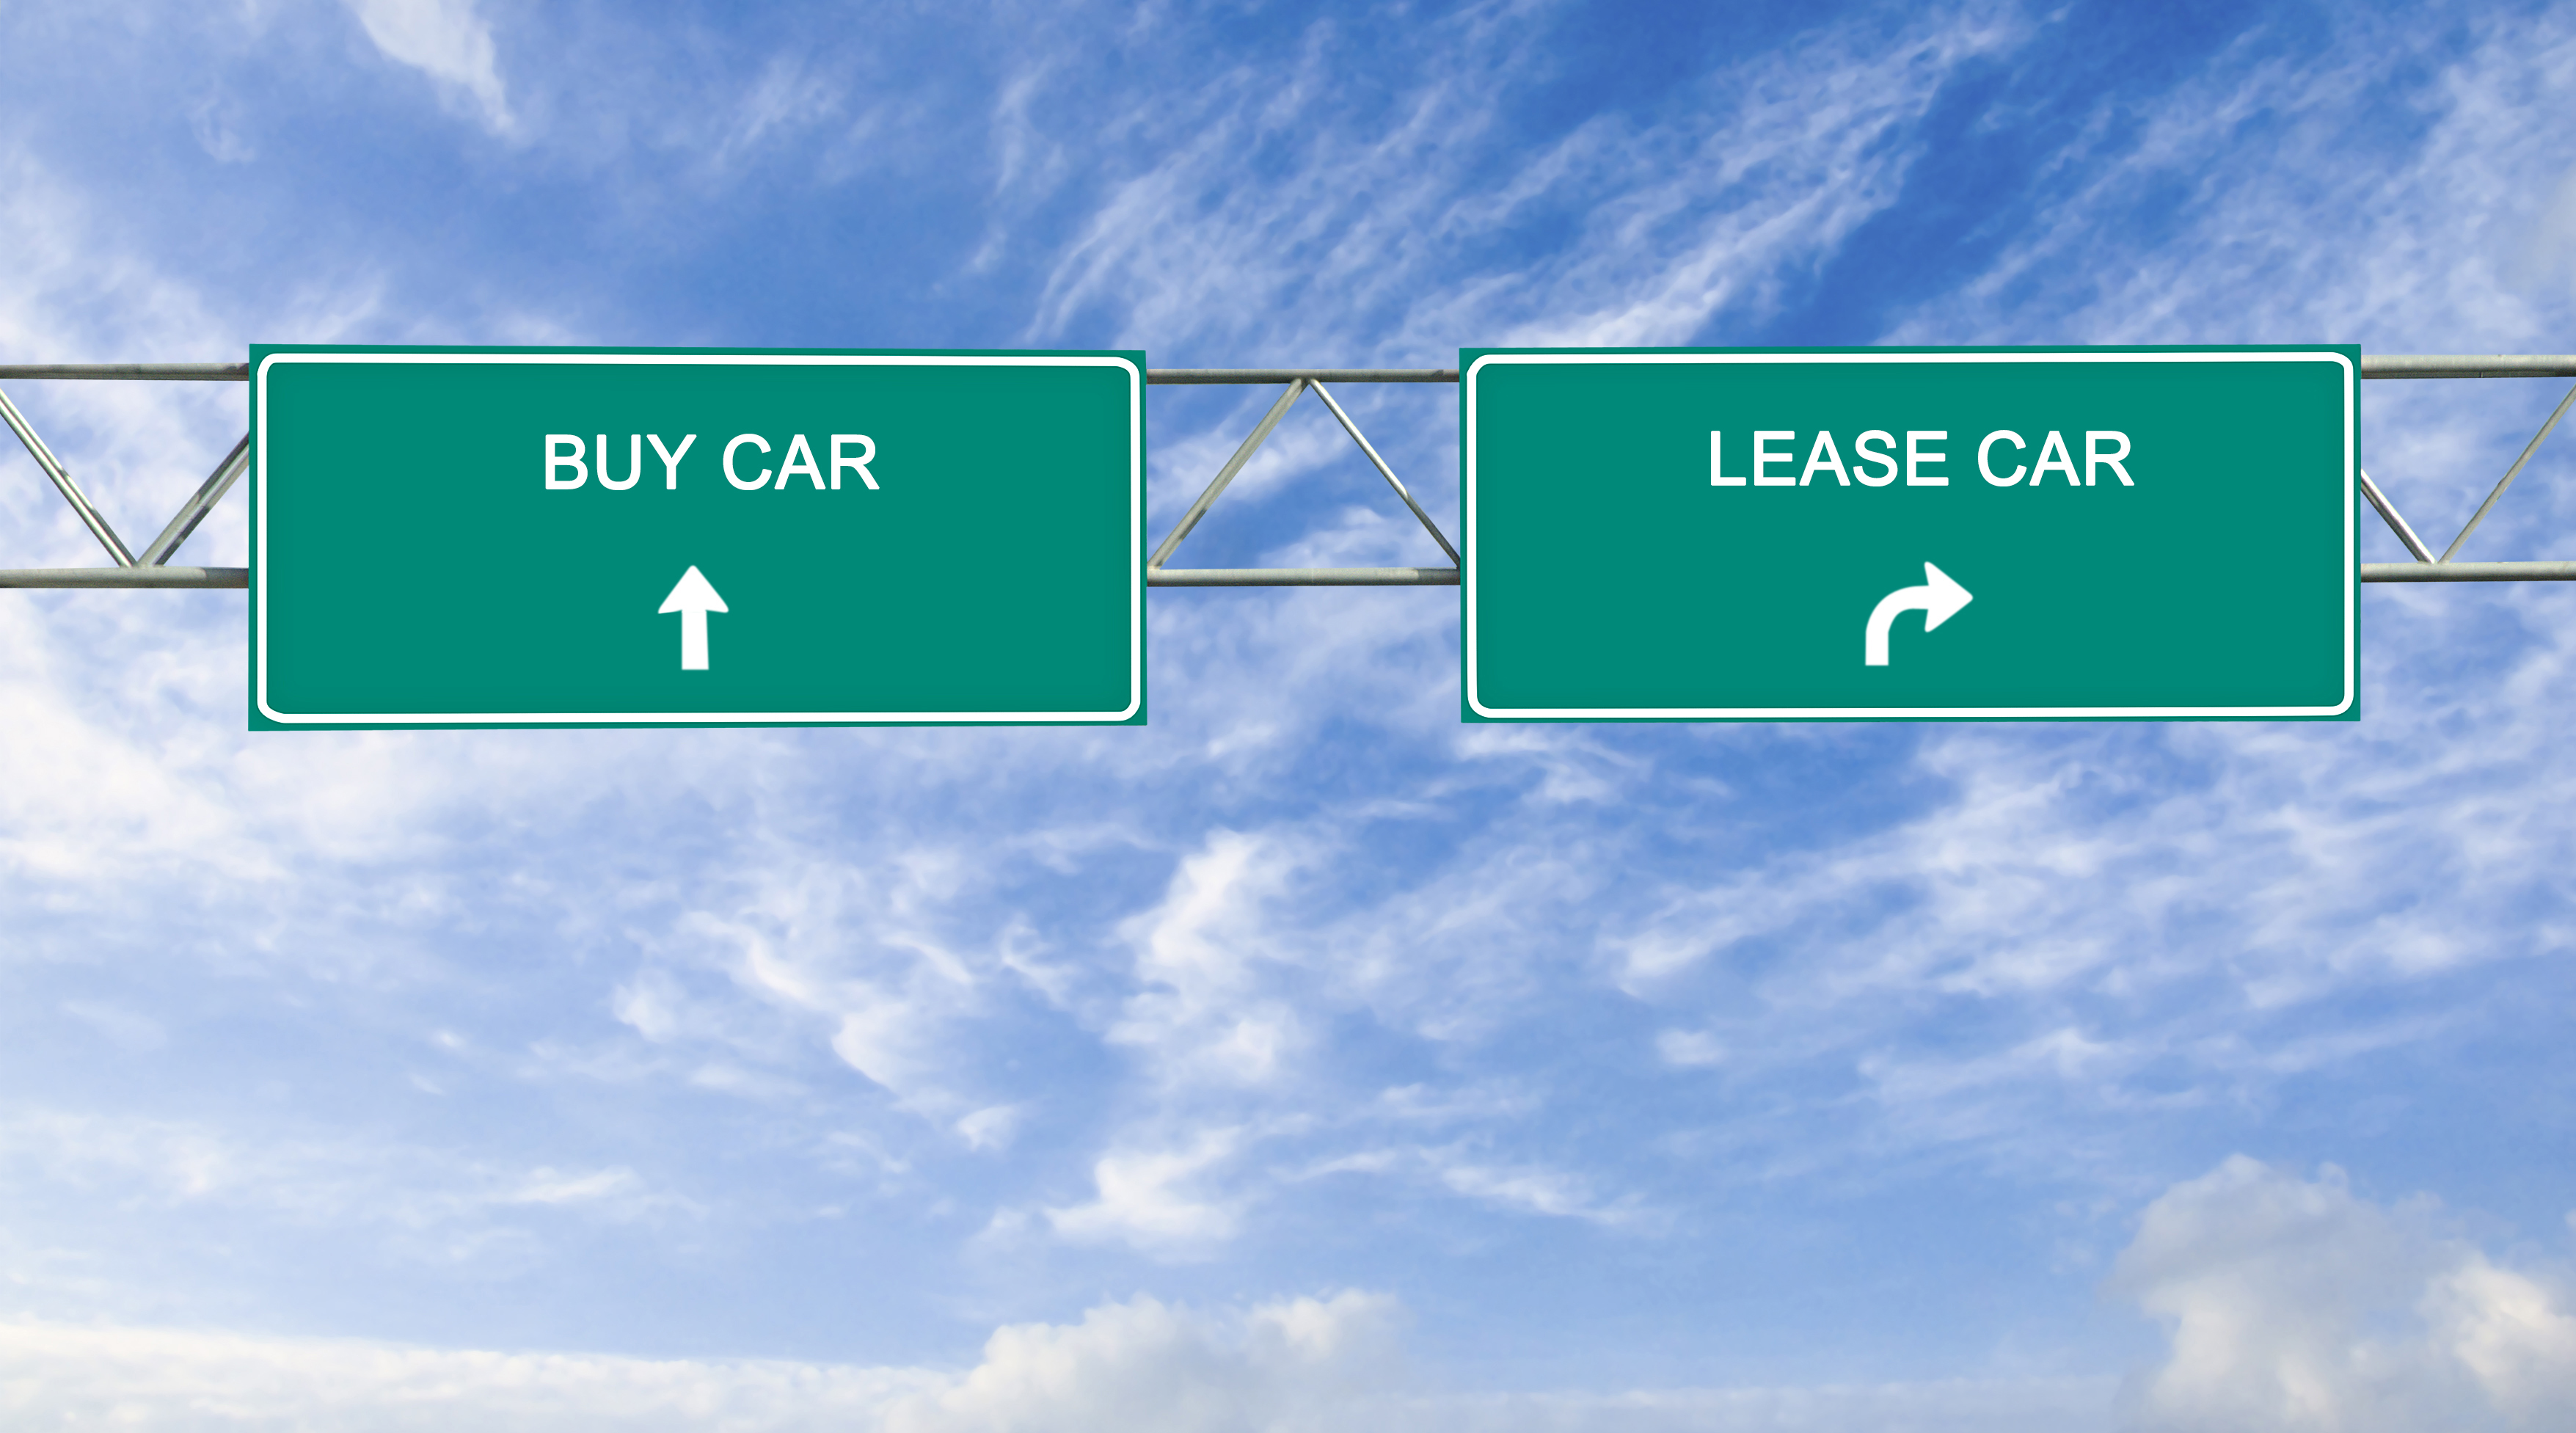 Leasing Frequently Asked Questions near Washington, DC